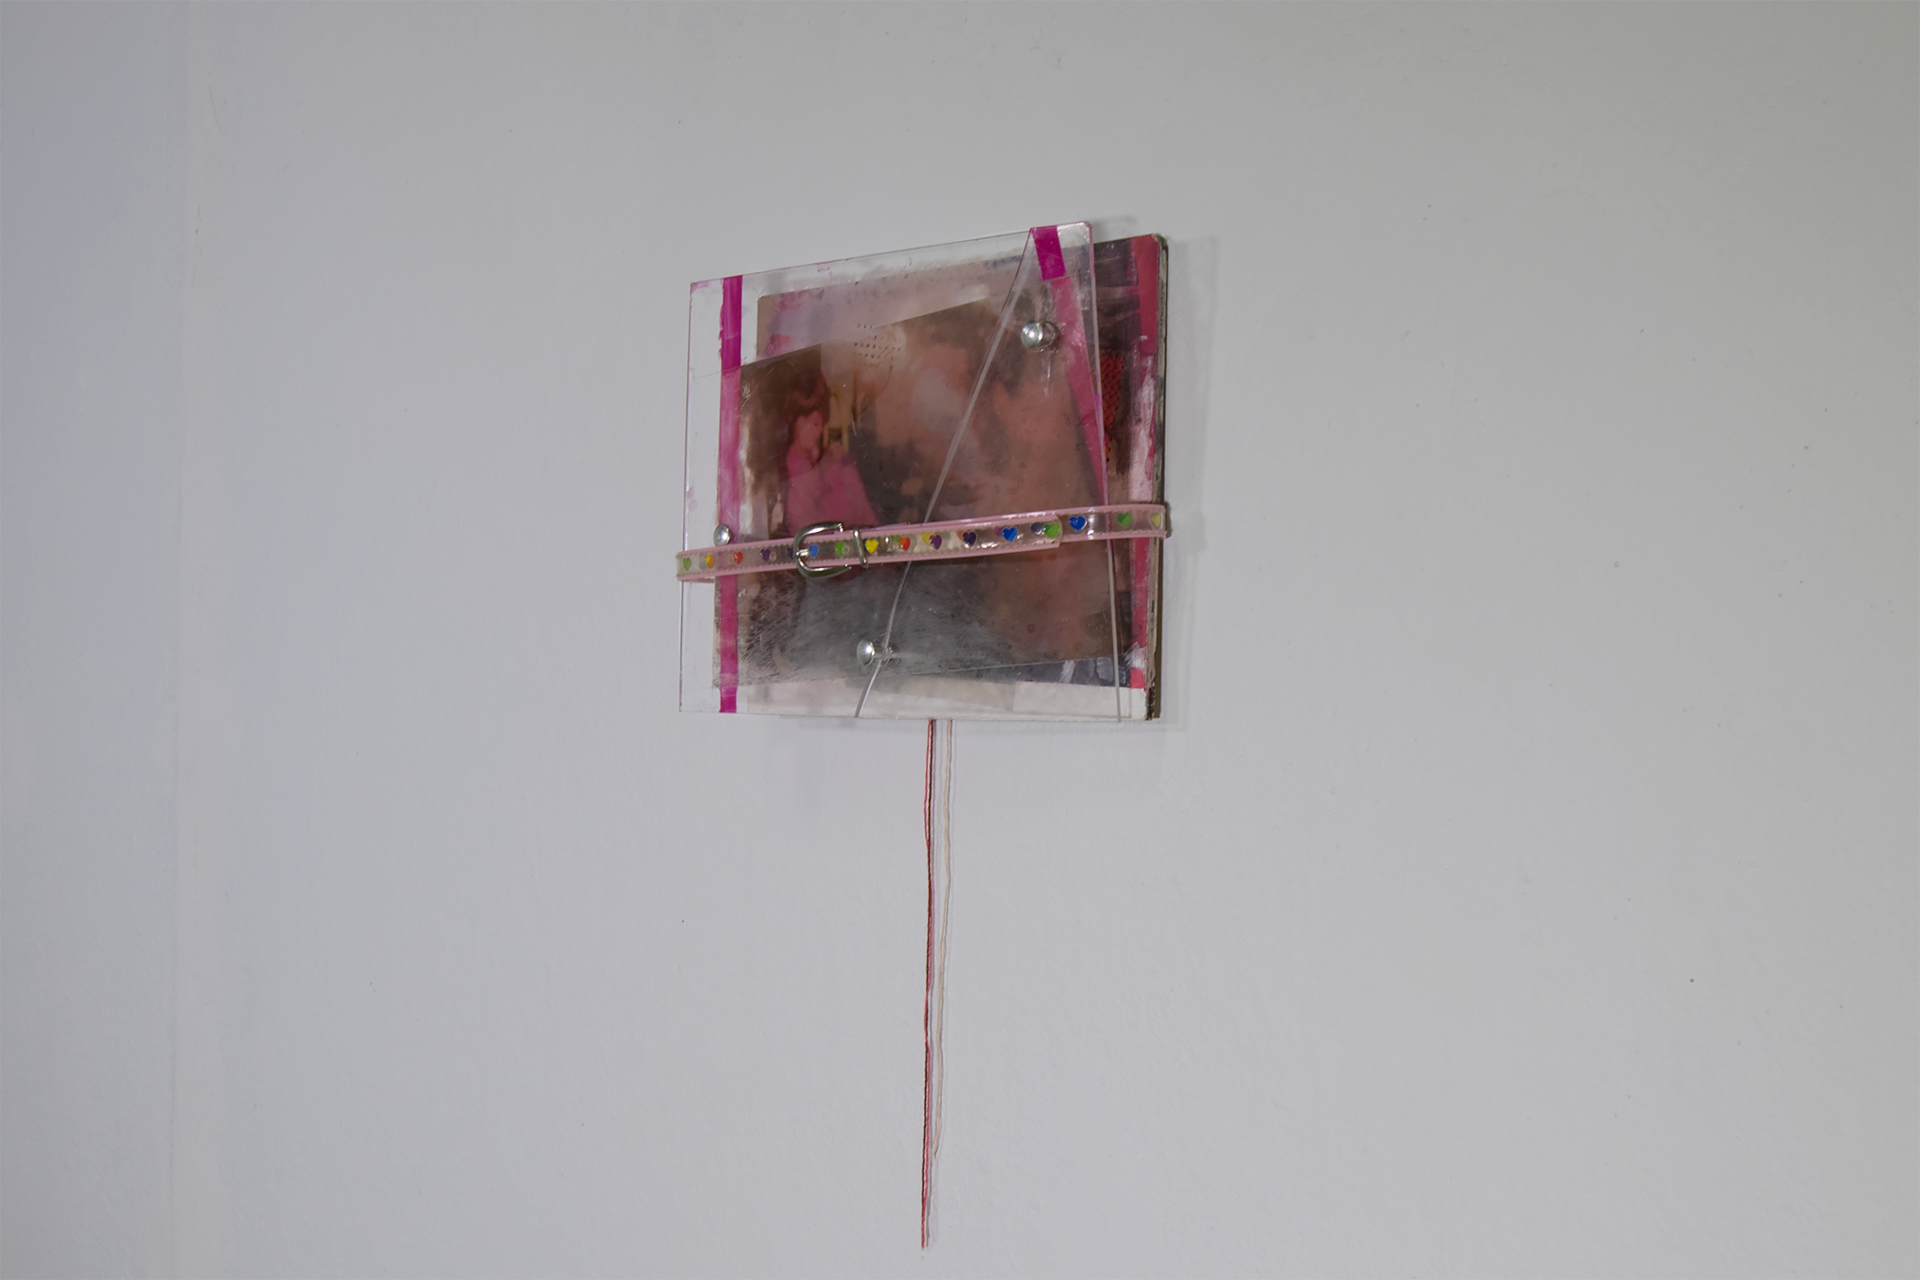 """She's Being a Brat   acrylic on panel and plexiglass, embroidery floss, belt.  8"""" x 10"""" x 2""""  2017"""